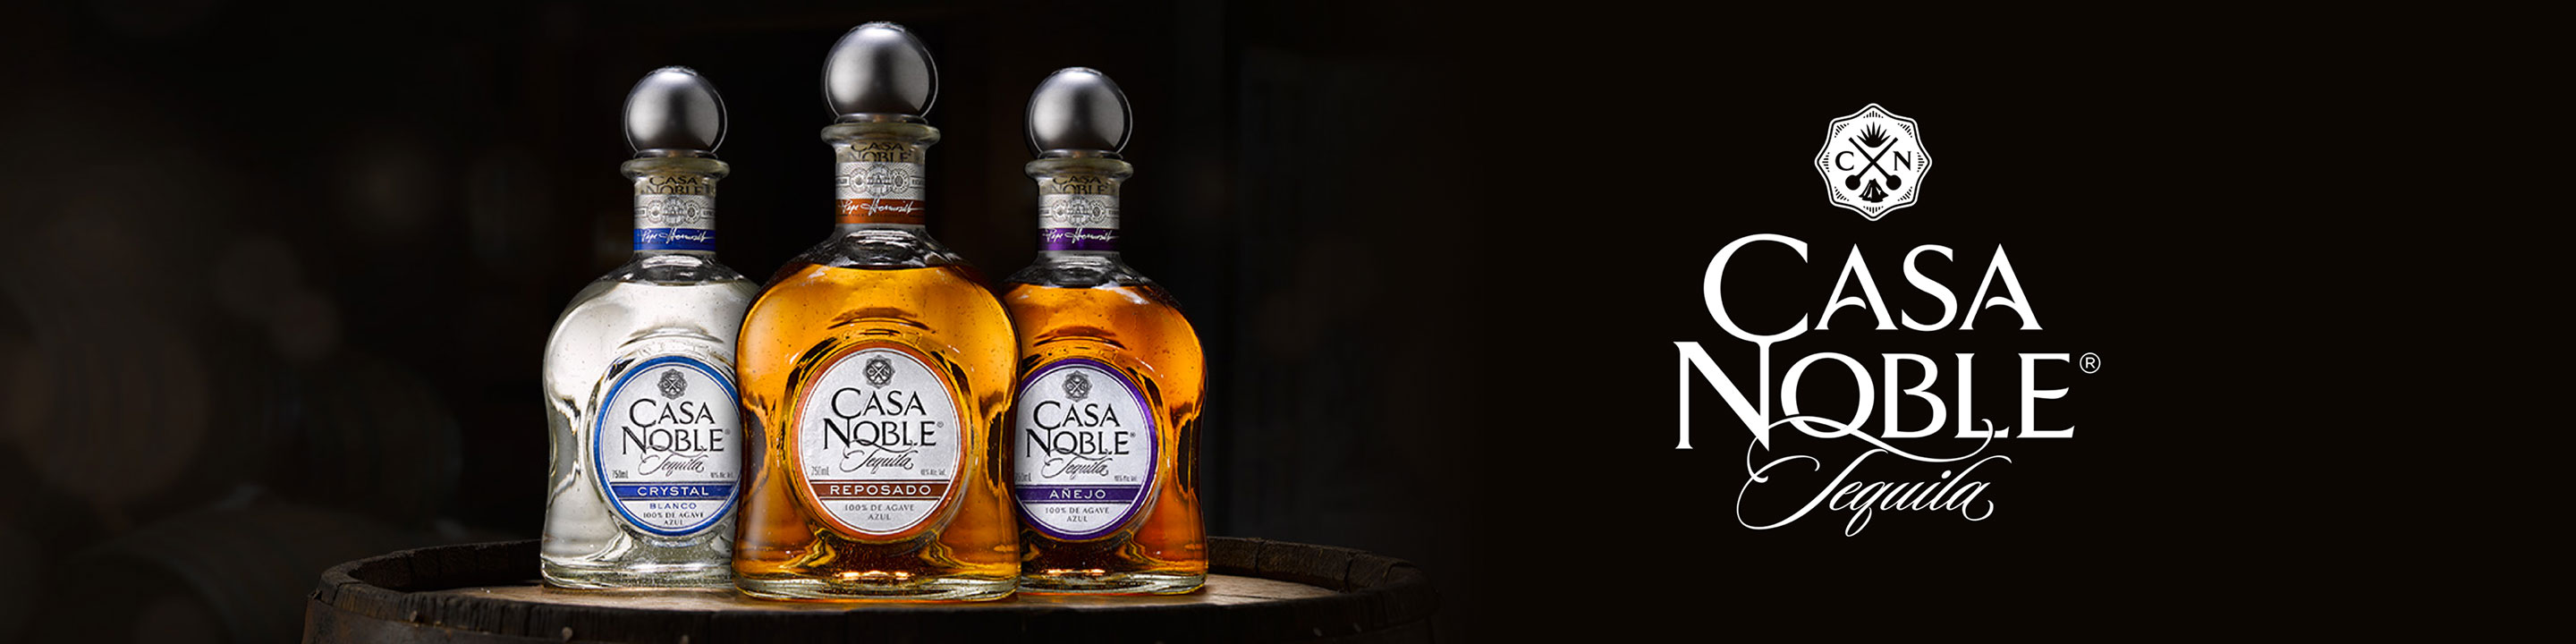 To craft superior tequila worth sharing, that's Casa Noble's pursuit. The tequila is made from estate-grown agaves cooked in traditional stone ovens; these are naturally fermented and distilled three times.  Buy Casa Noble online now from your nearby liquor store via Minibar Delivery.